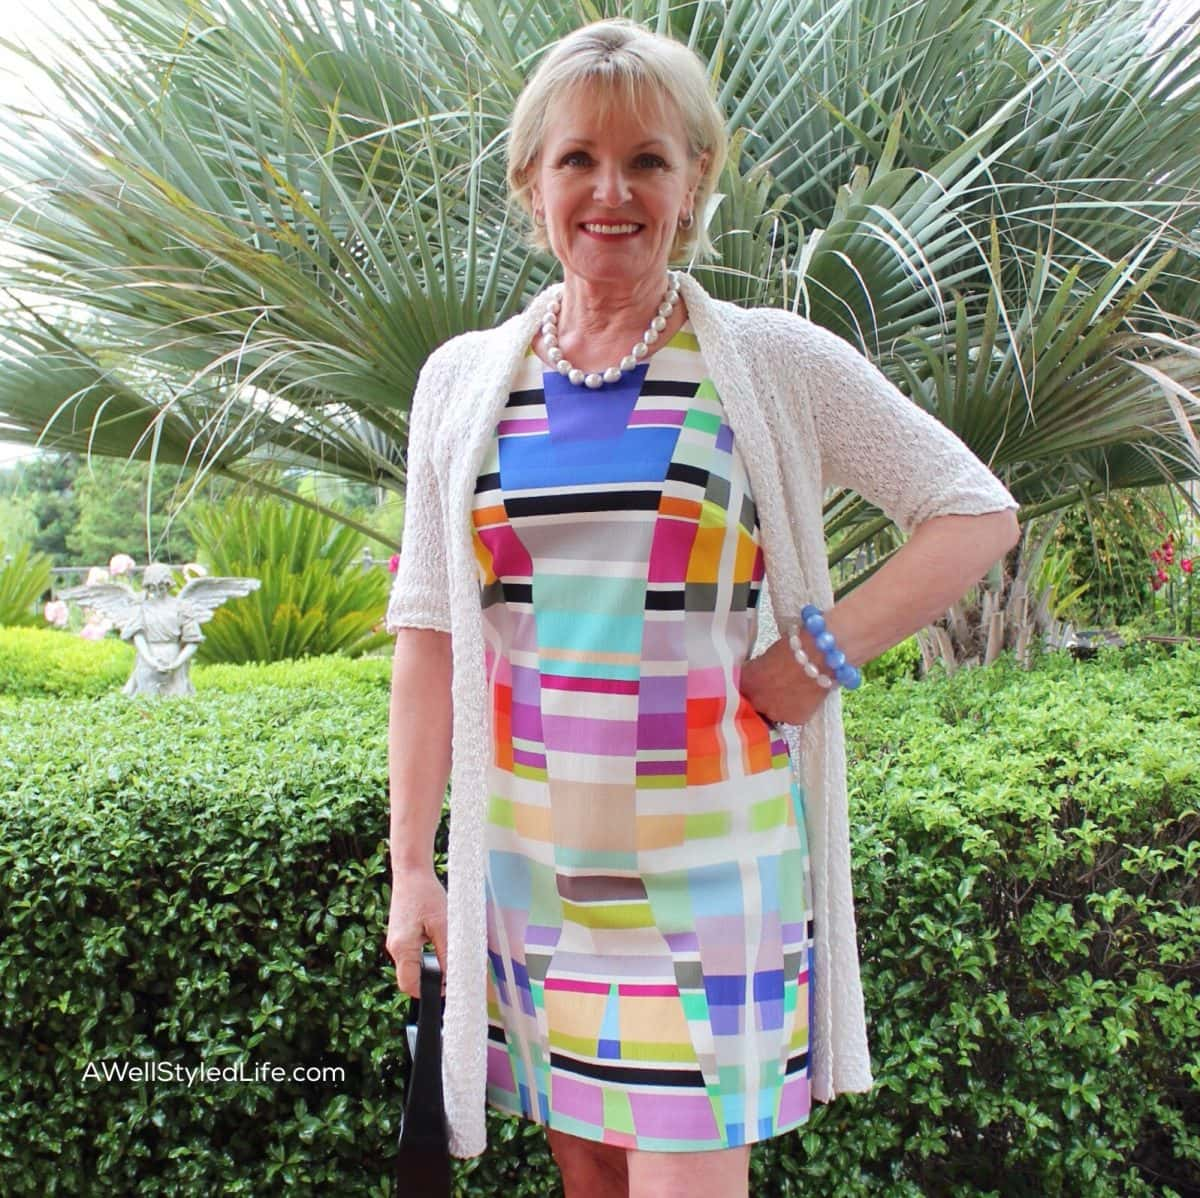 Dresses for Women Over 50: Obsolete or Wearable